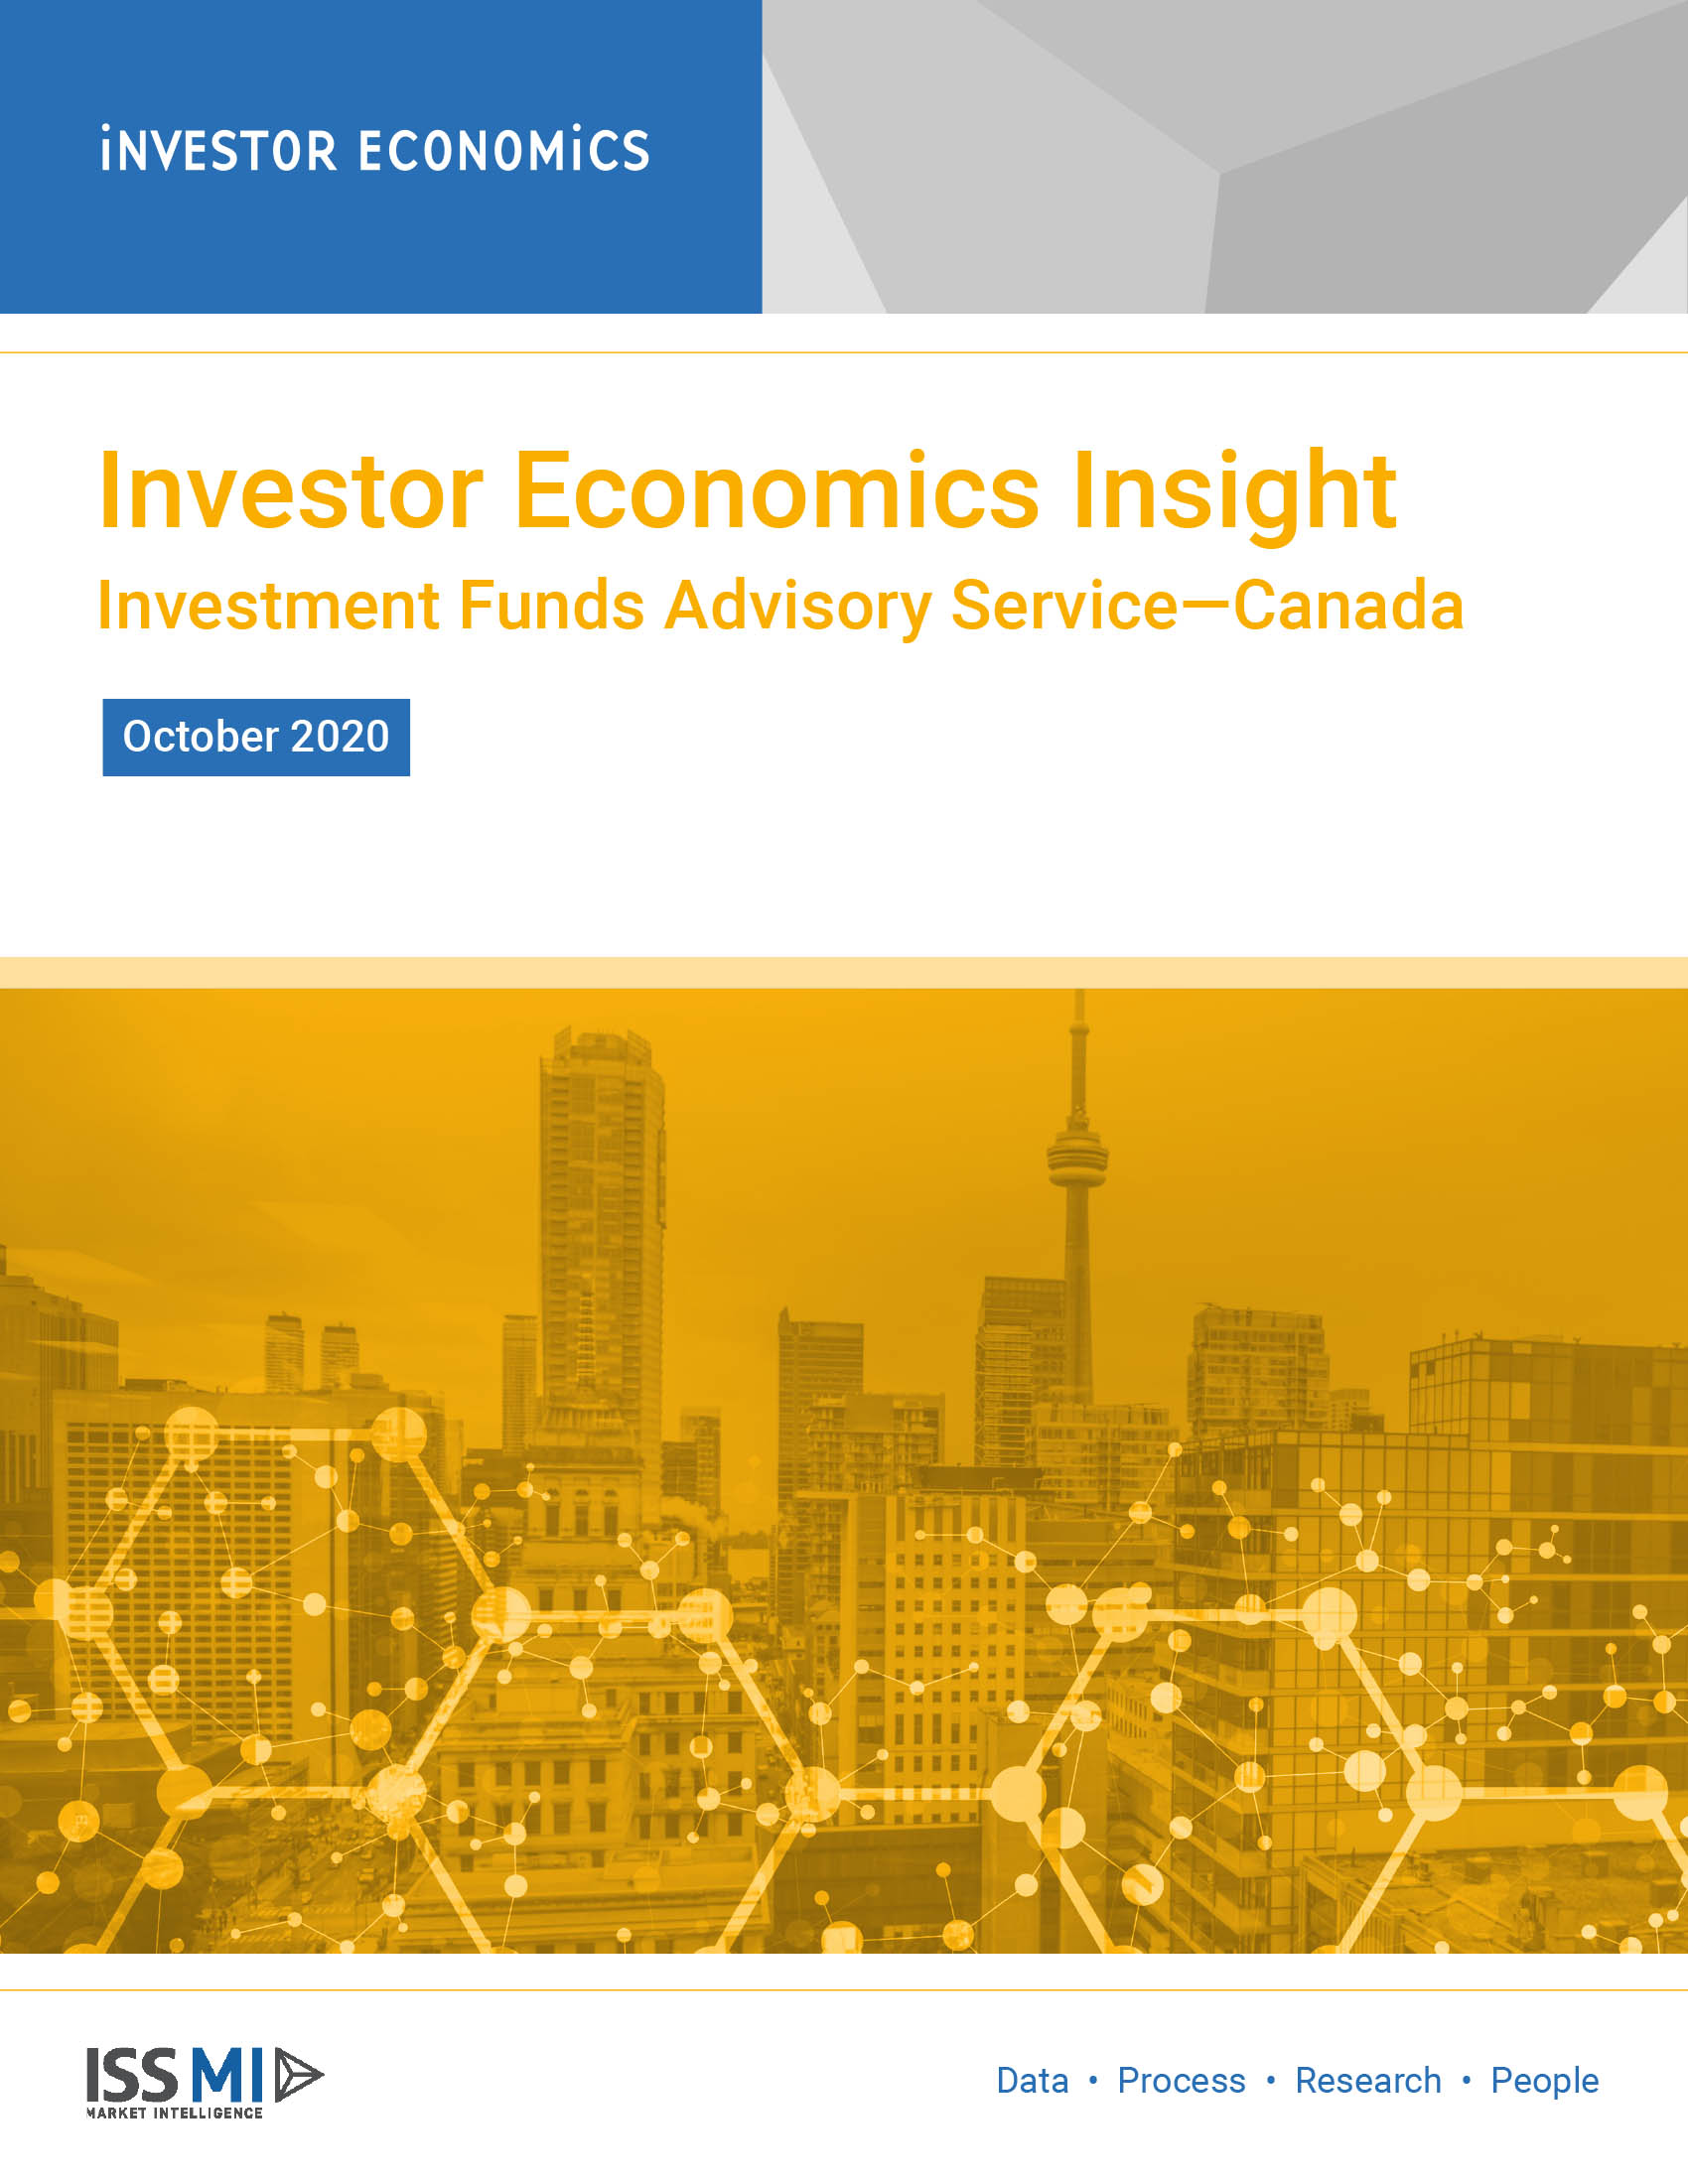 Investor Economics Insight— October 2020